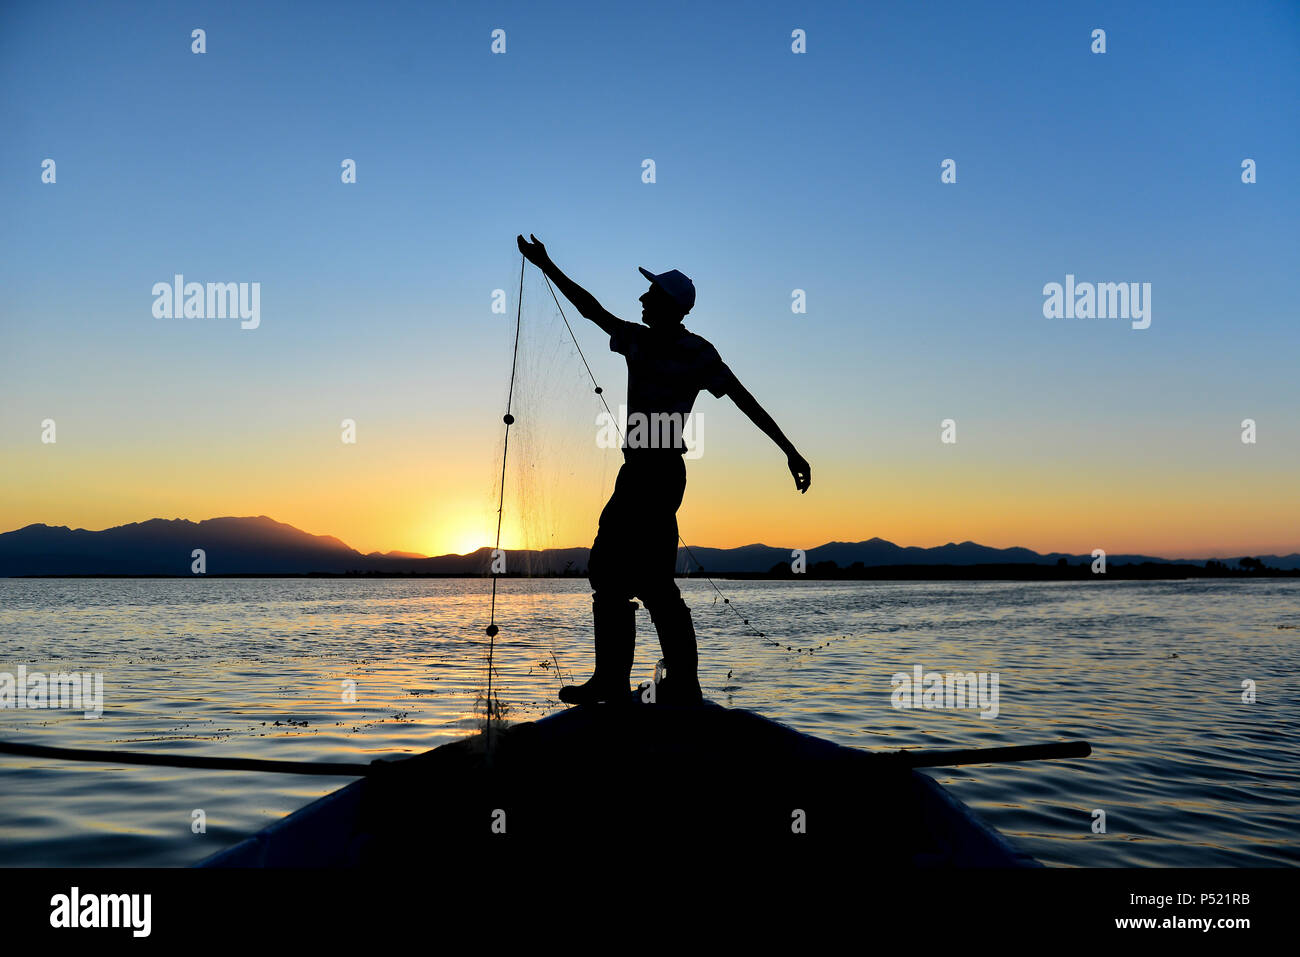 silhouette of man fishing - Stock Image